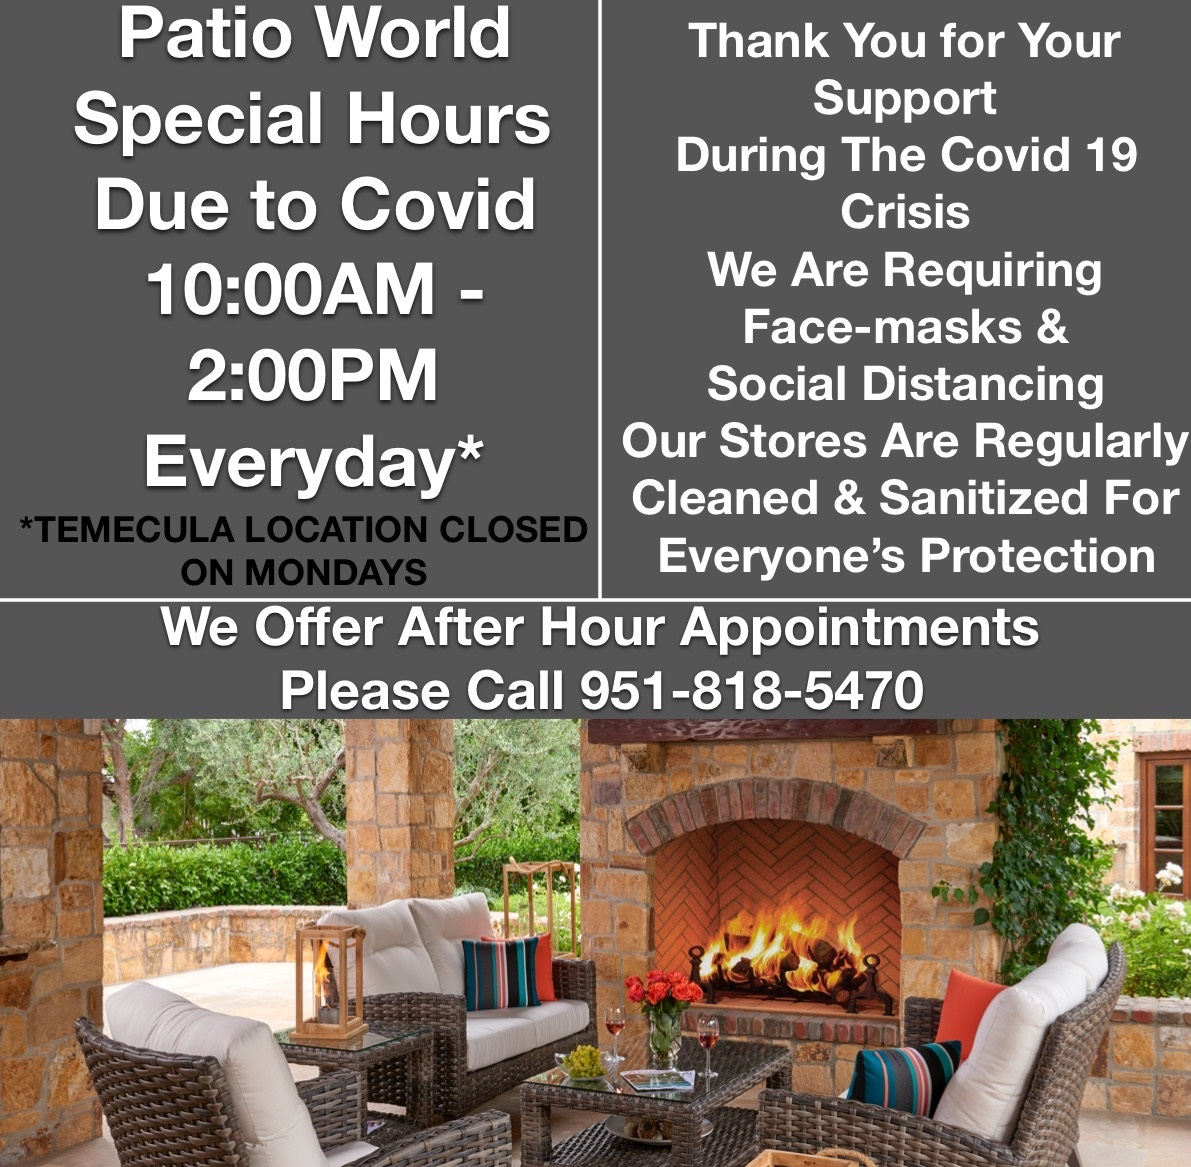 Covid-19 Hours - 10AM to 2PM